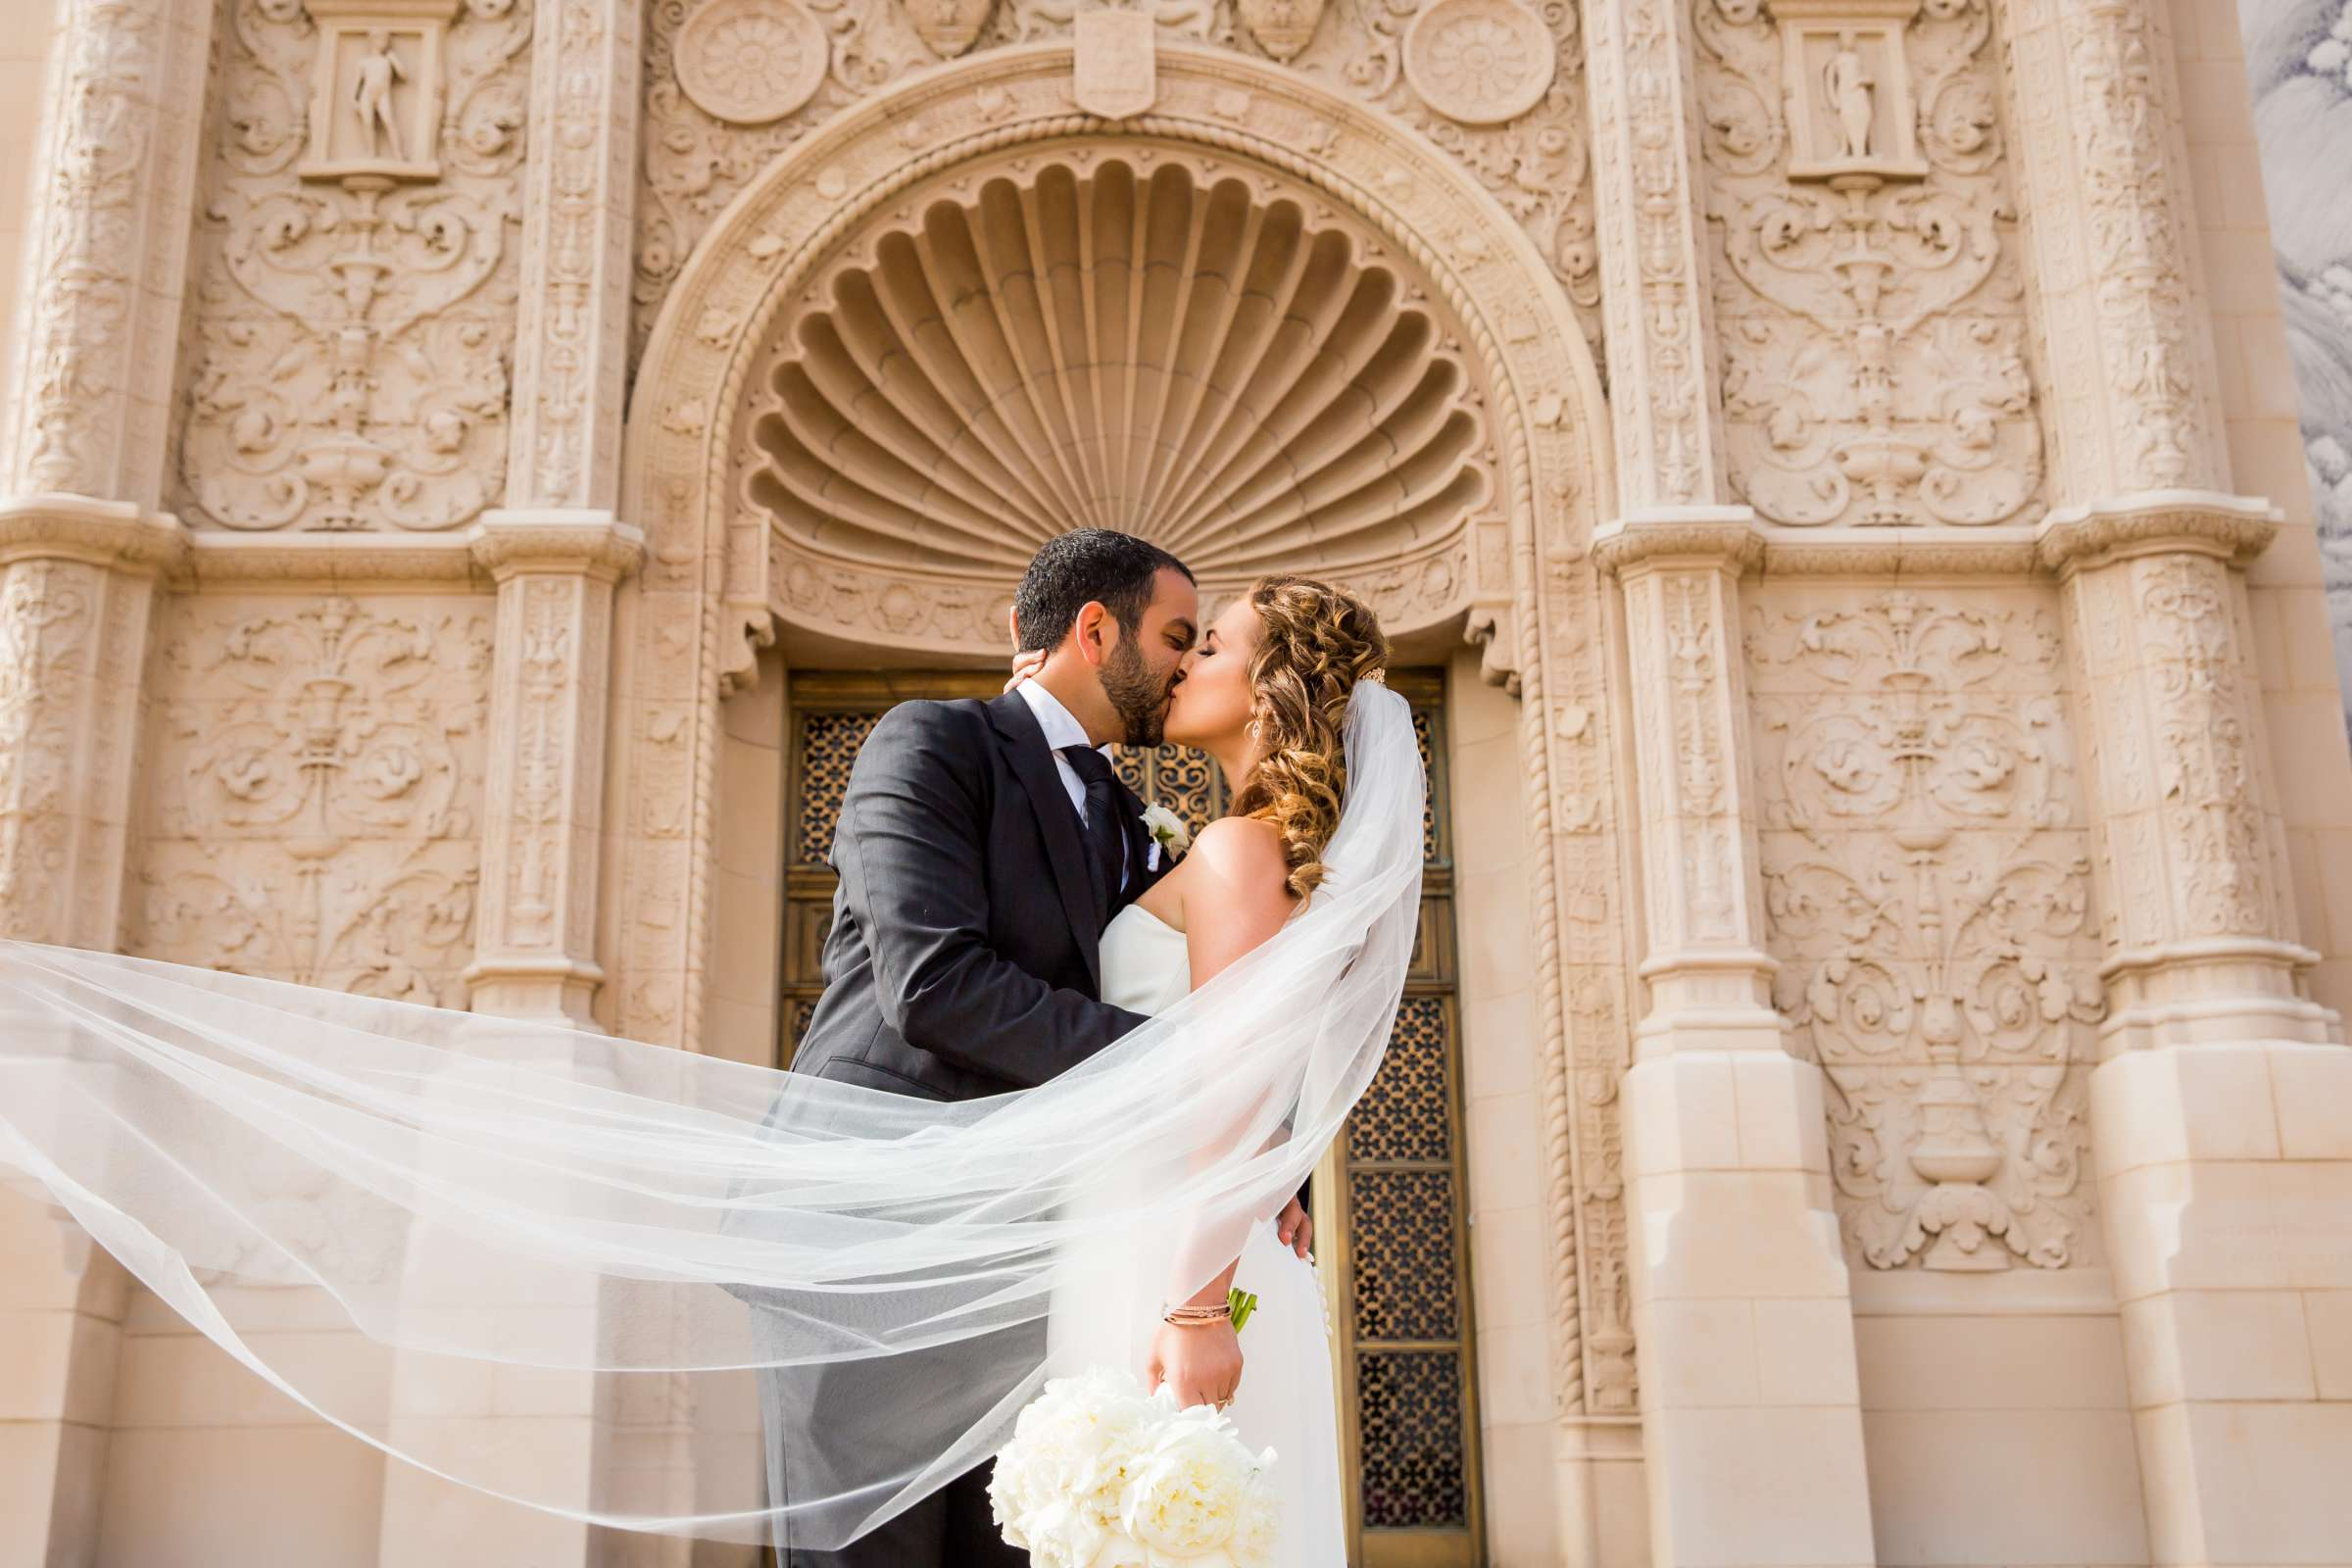 Romantic moment, Stylized Portrait at San Diego Museum of Art Wedding coordinated by First Comes Love Weddings & Events, Ruthie and Larry Wedding Photo #236736 by True Photography